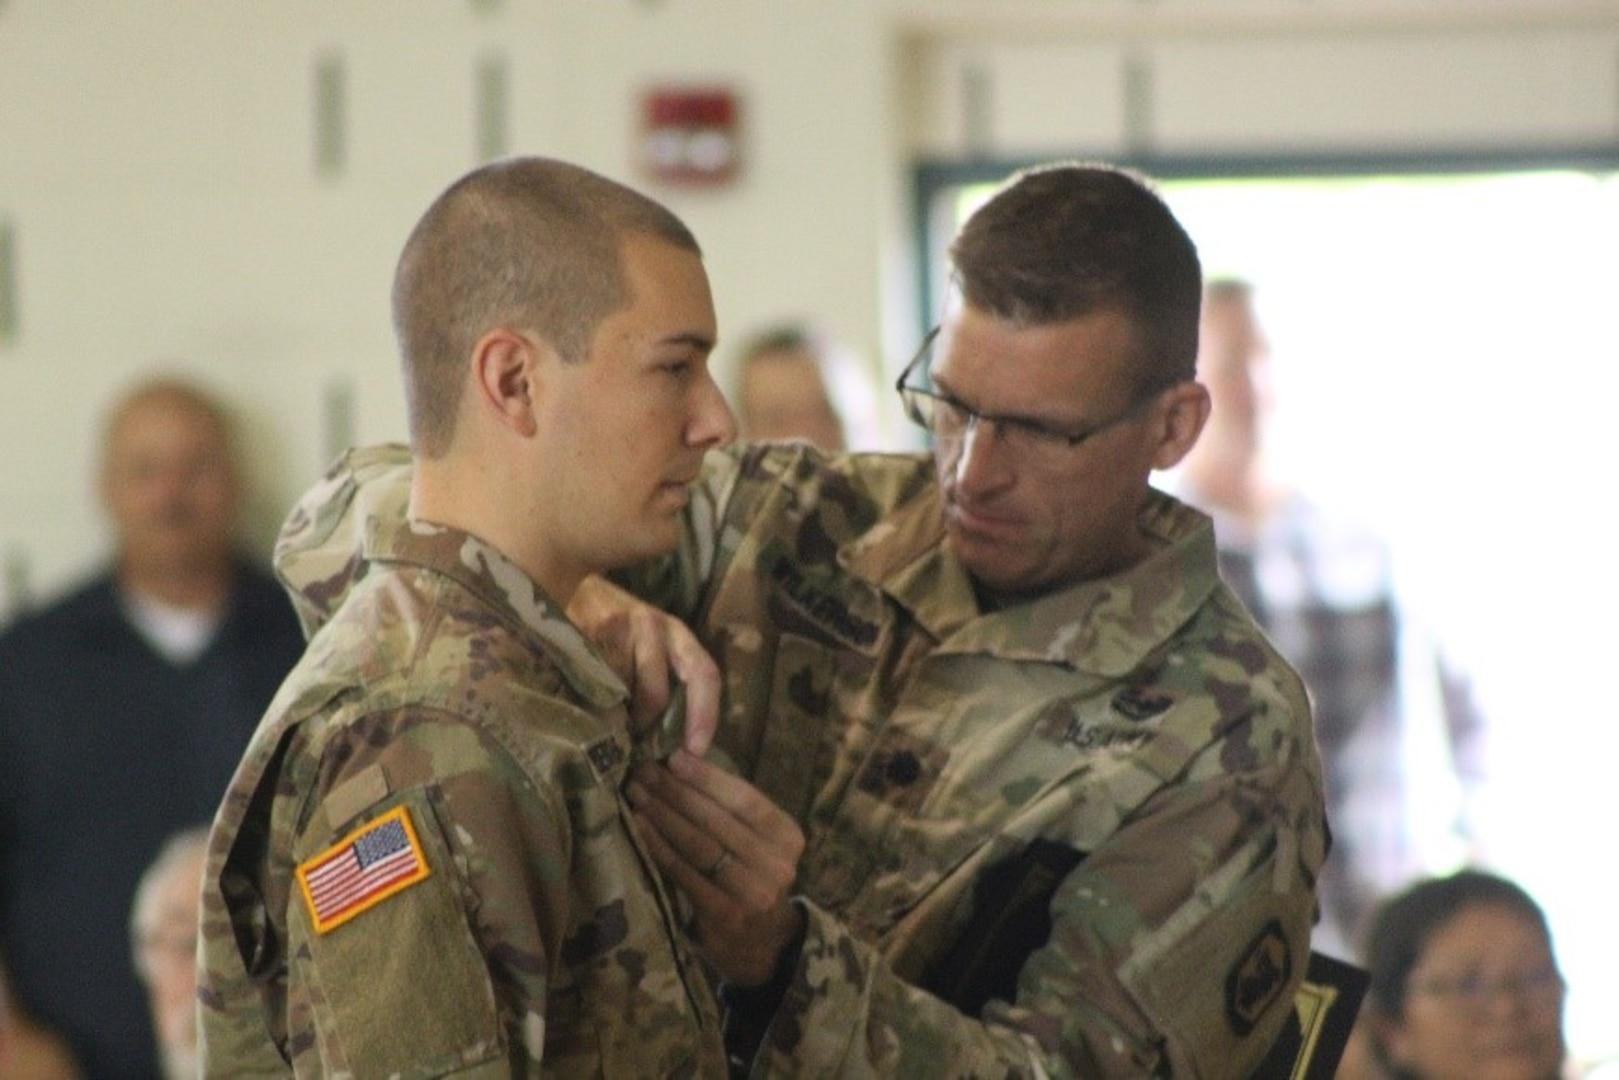 Lt. Col. Justin Wilkerson, of Peoria, Illinois, 404th  Manuever Enhancement Brigade, presents the Illinois National Guard Military Medal of Merit to 2nd Lt. Patrick J. Pendergast, of Plainfield, Illinois. Pendergast, who serves as a platoon leader in the 233rd Military Police Company based in Springfield, Illinois, was awarded the Military Medal of Merit for his contributions to the success of flood response operations during State Active Duty.